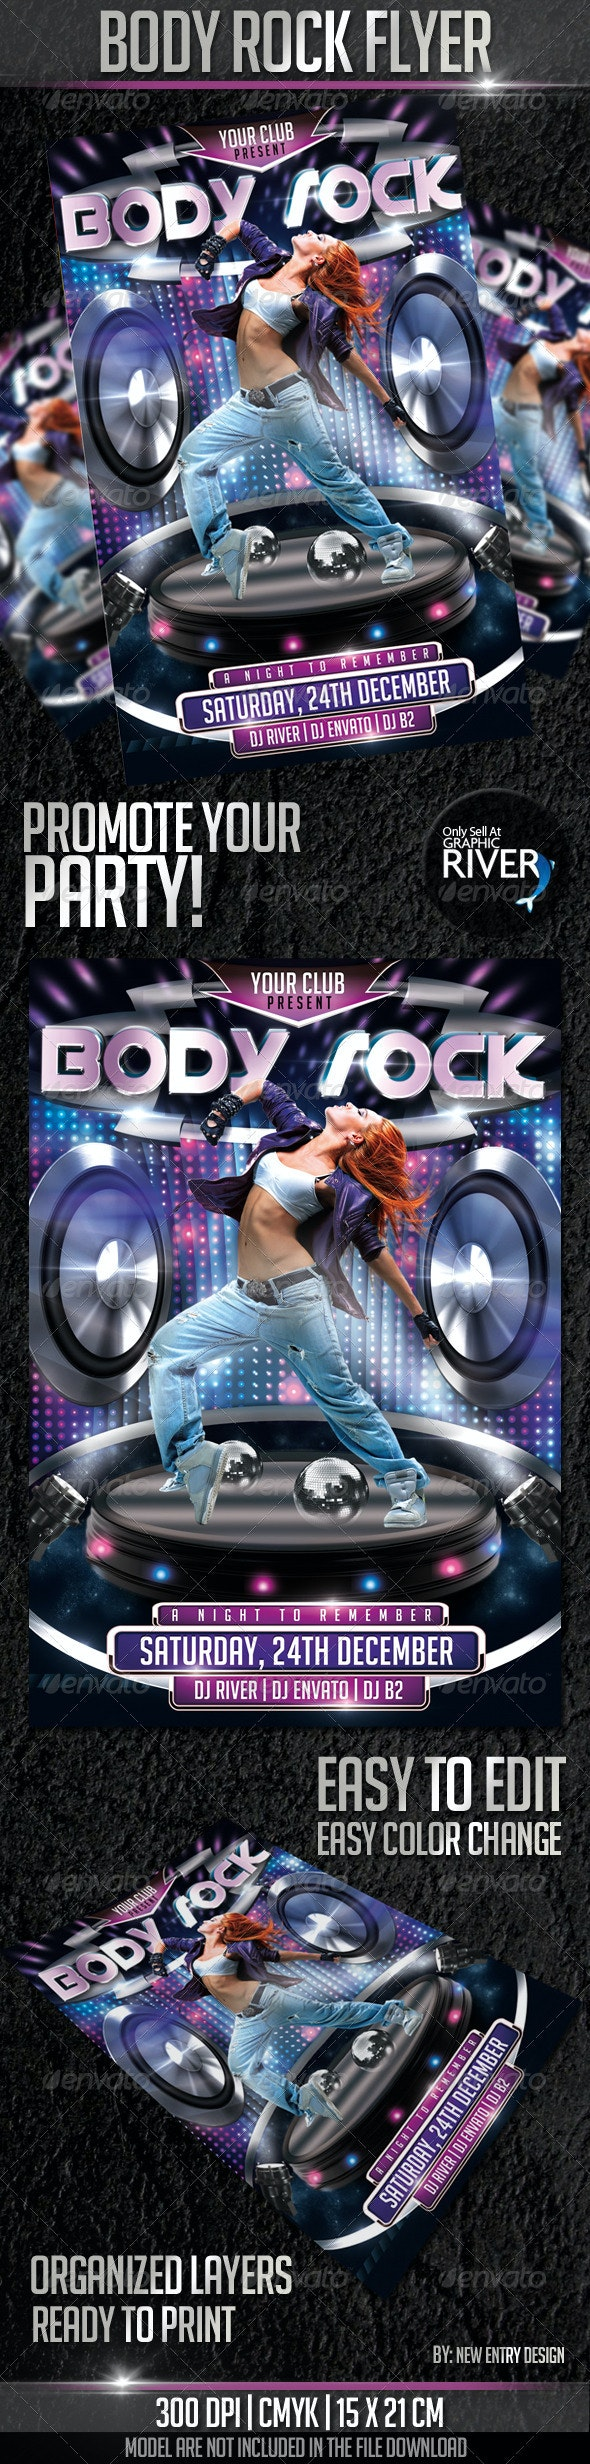 Body Rock Flyer Template - Events Flyers